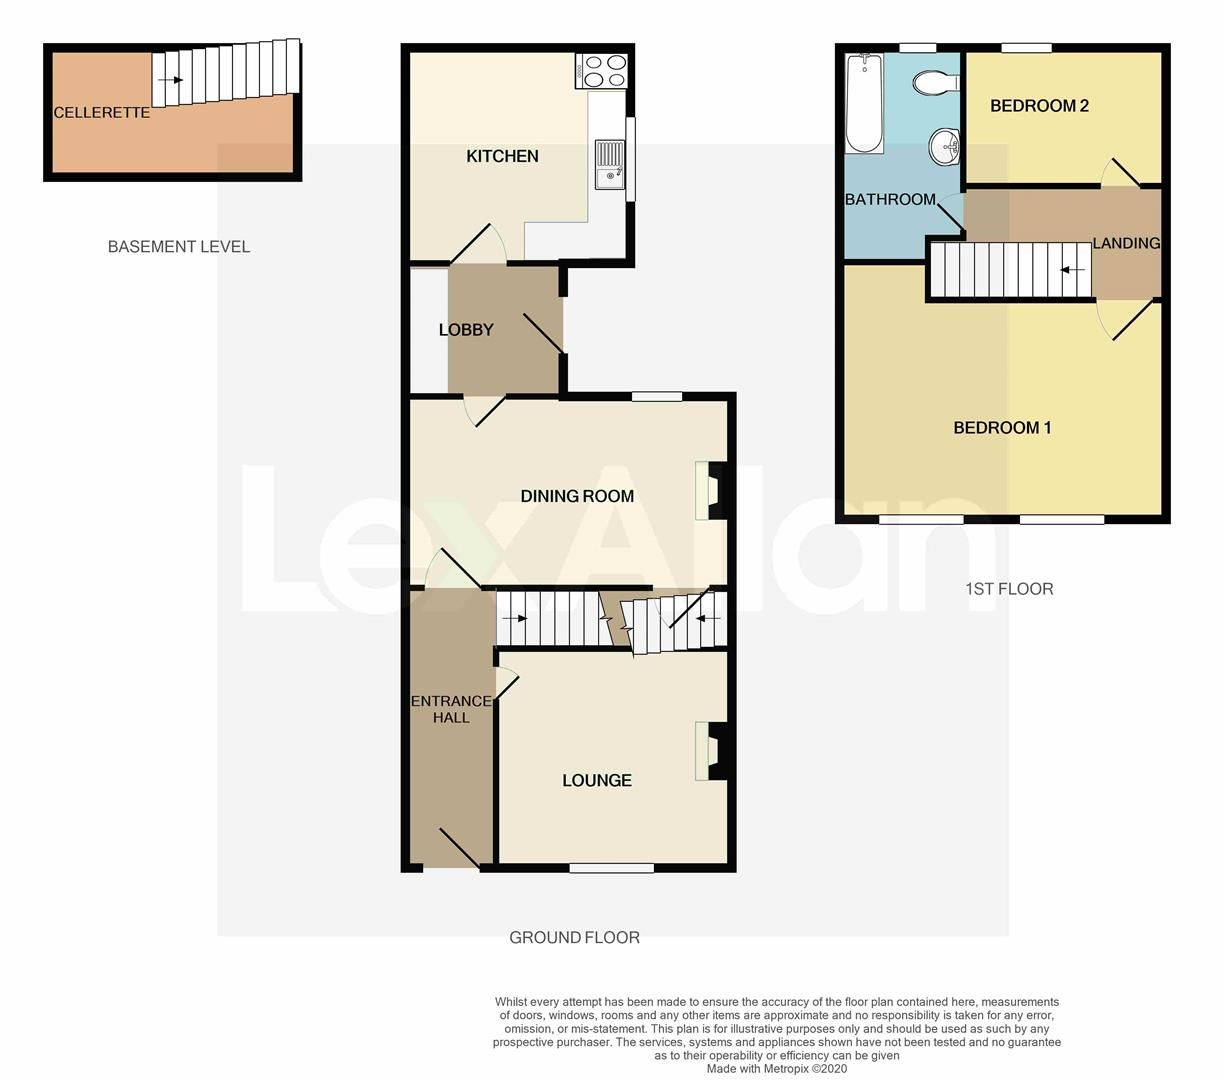 2 bed semi-detached for sale - Property Floorplan